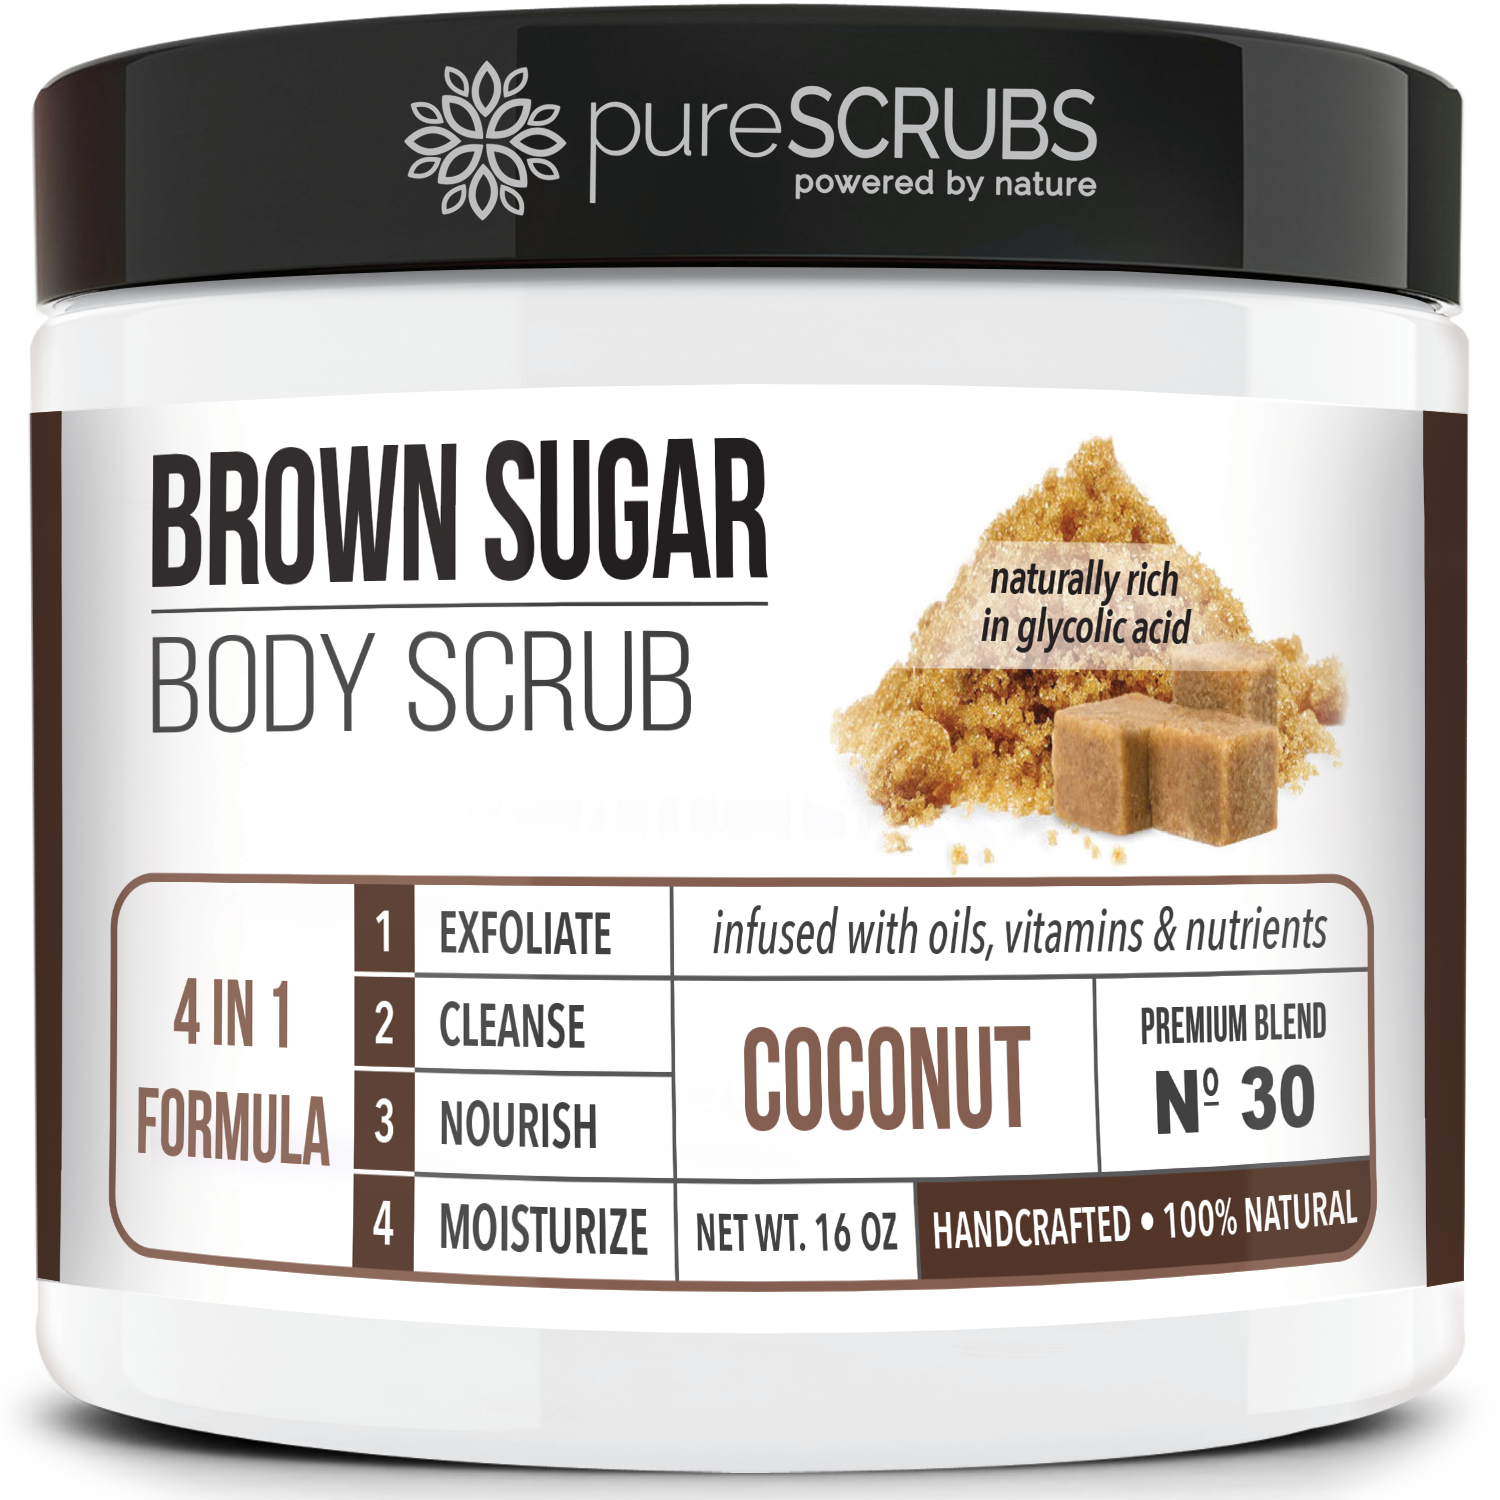 Coconut Body Scrub / Brown Sugar / Premium Blend #30